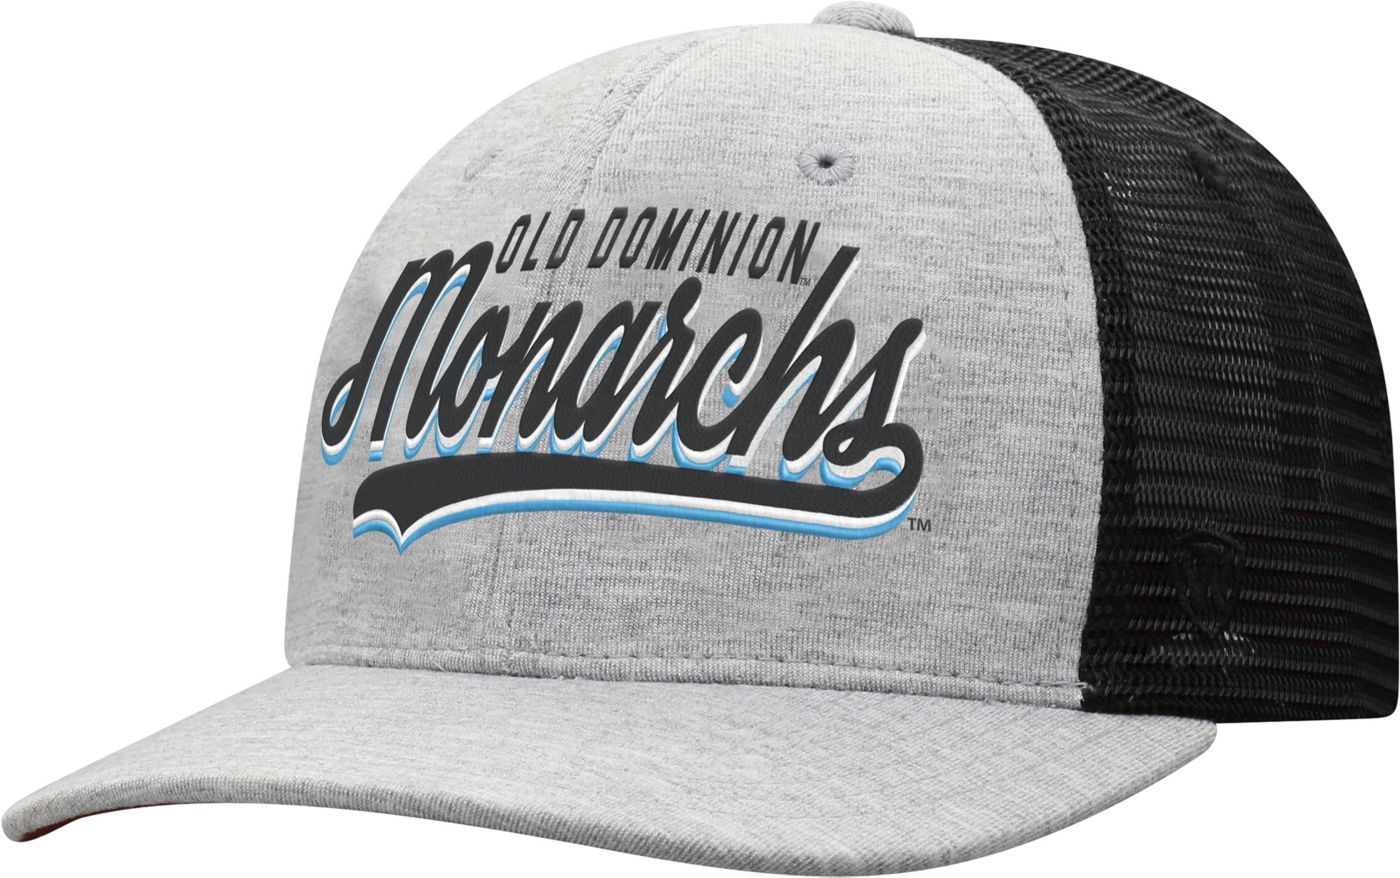 Top of the World Men's Old Dominion Monarchs Grey/Black Cutter Adjustable Hat